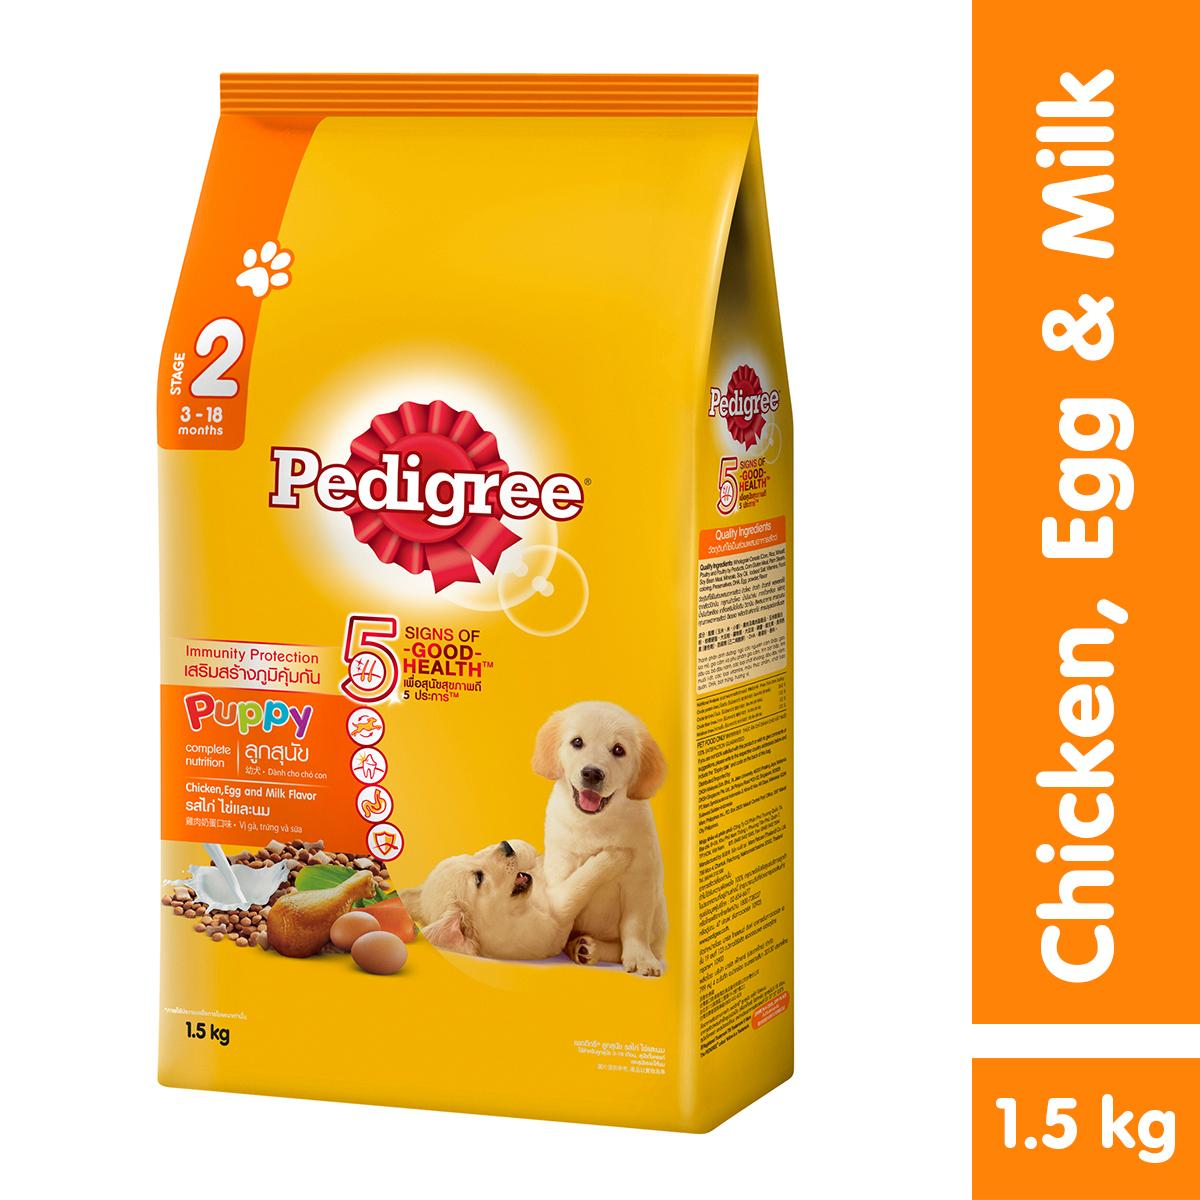 Pedigree Dry Puppy 1.5kg Makanan Anjing Kering Rasa Chicken & Egg By Pedigree Official Store.